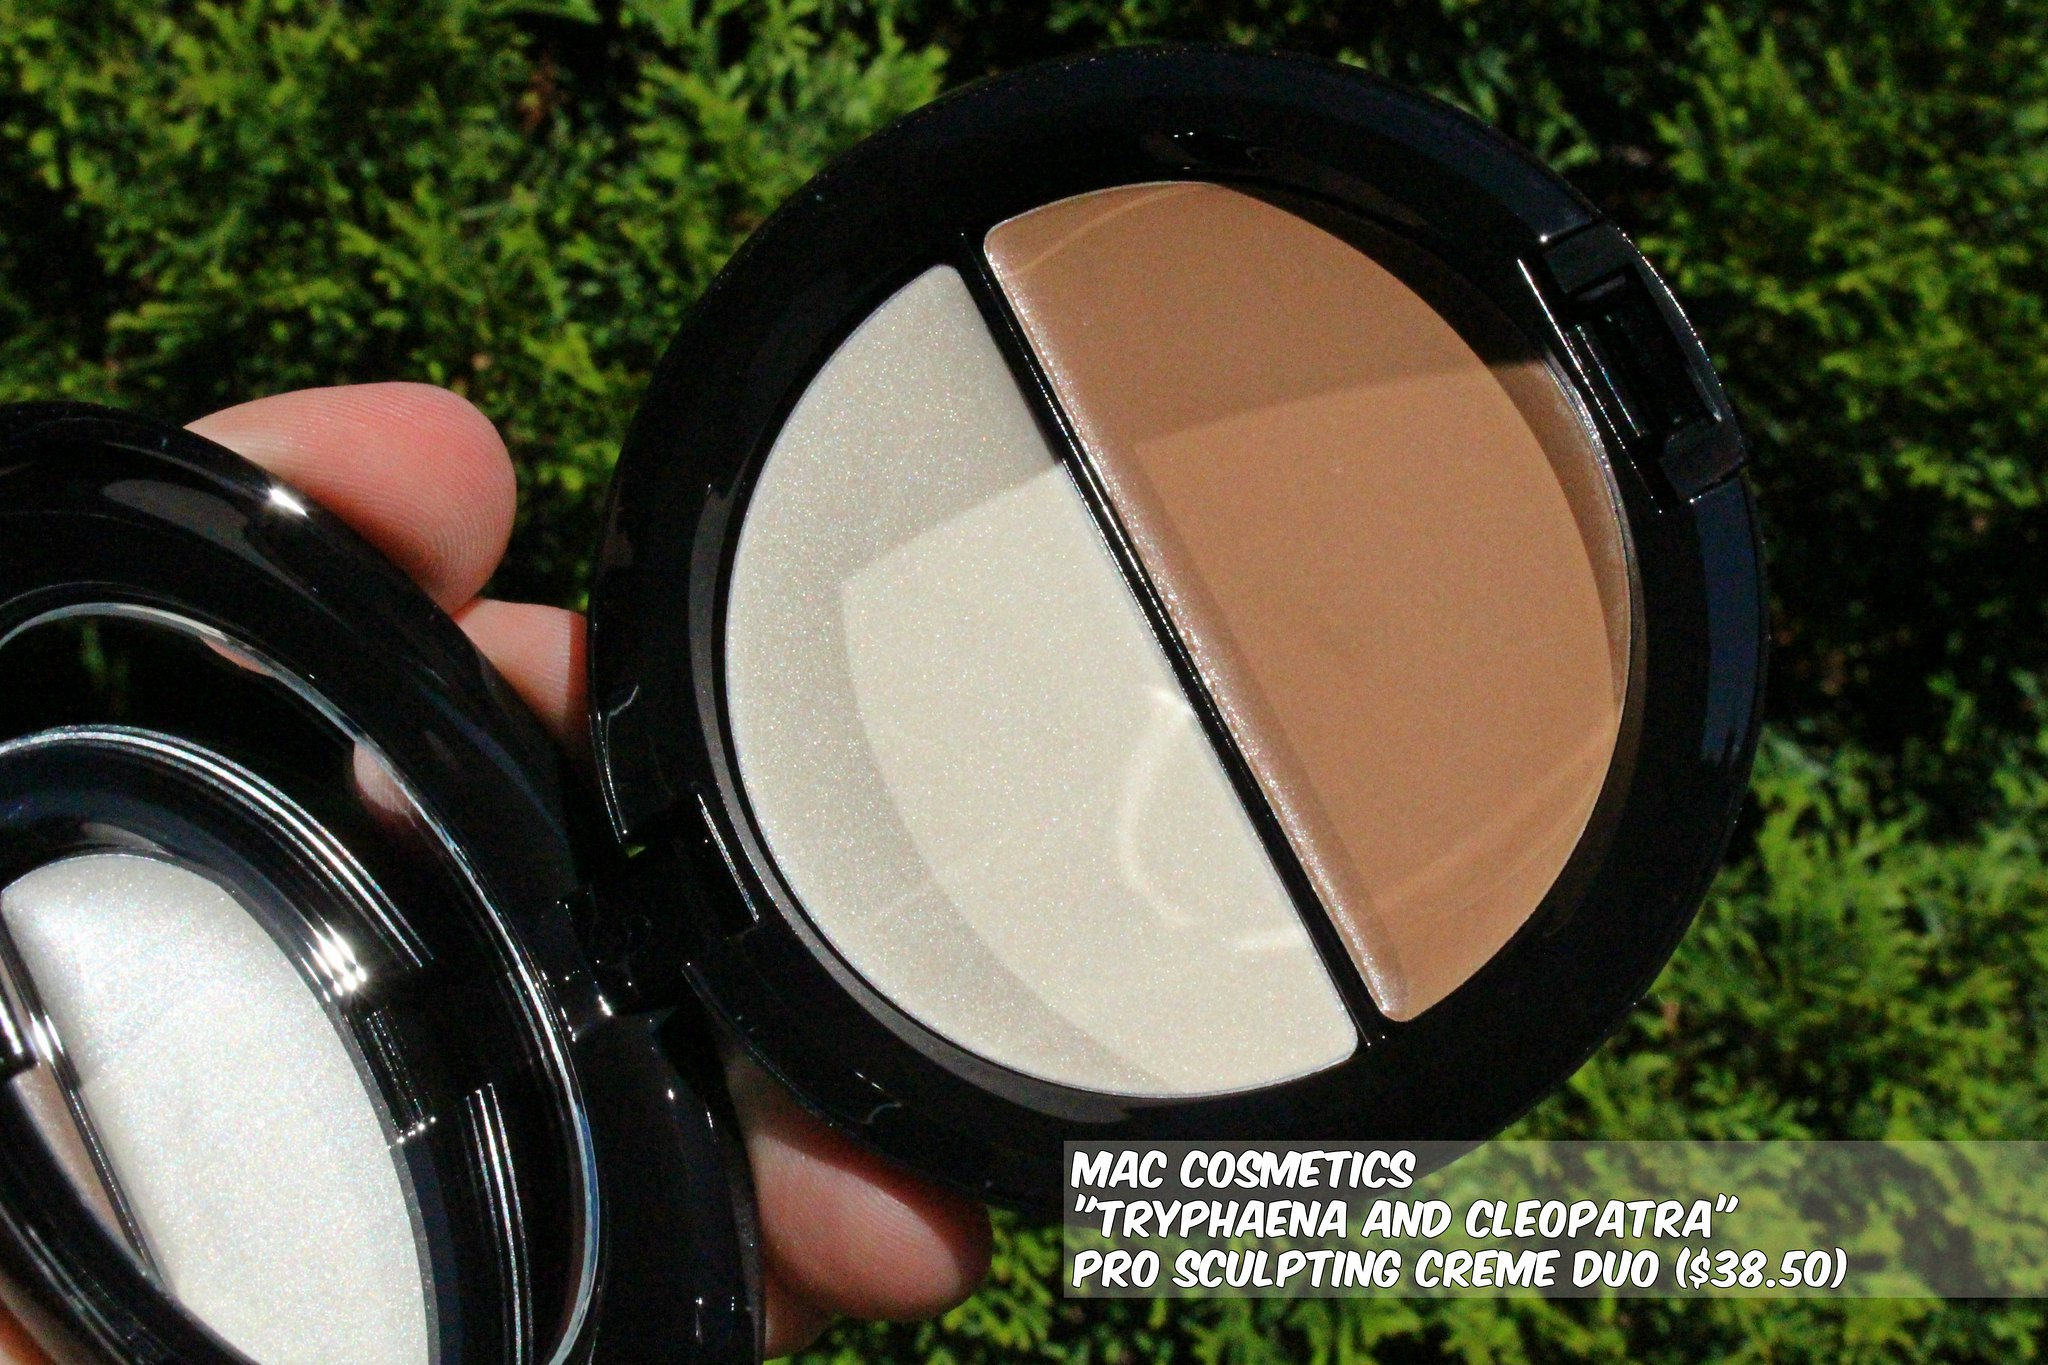 MAC Pro Sculpting Creme Duo Tryphaena and Cleopatra